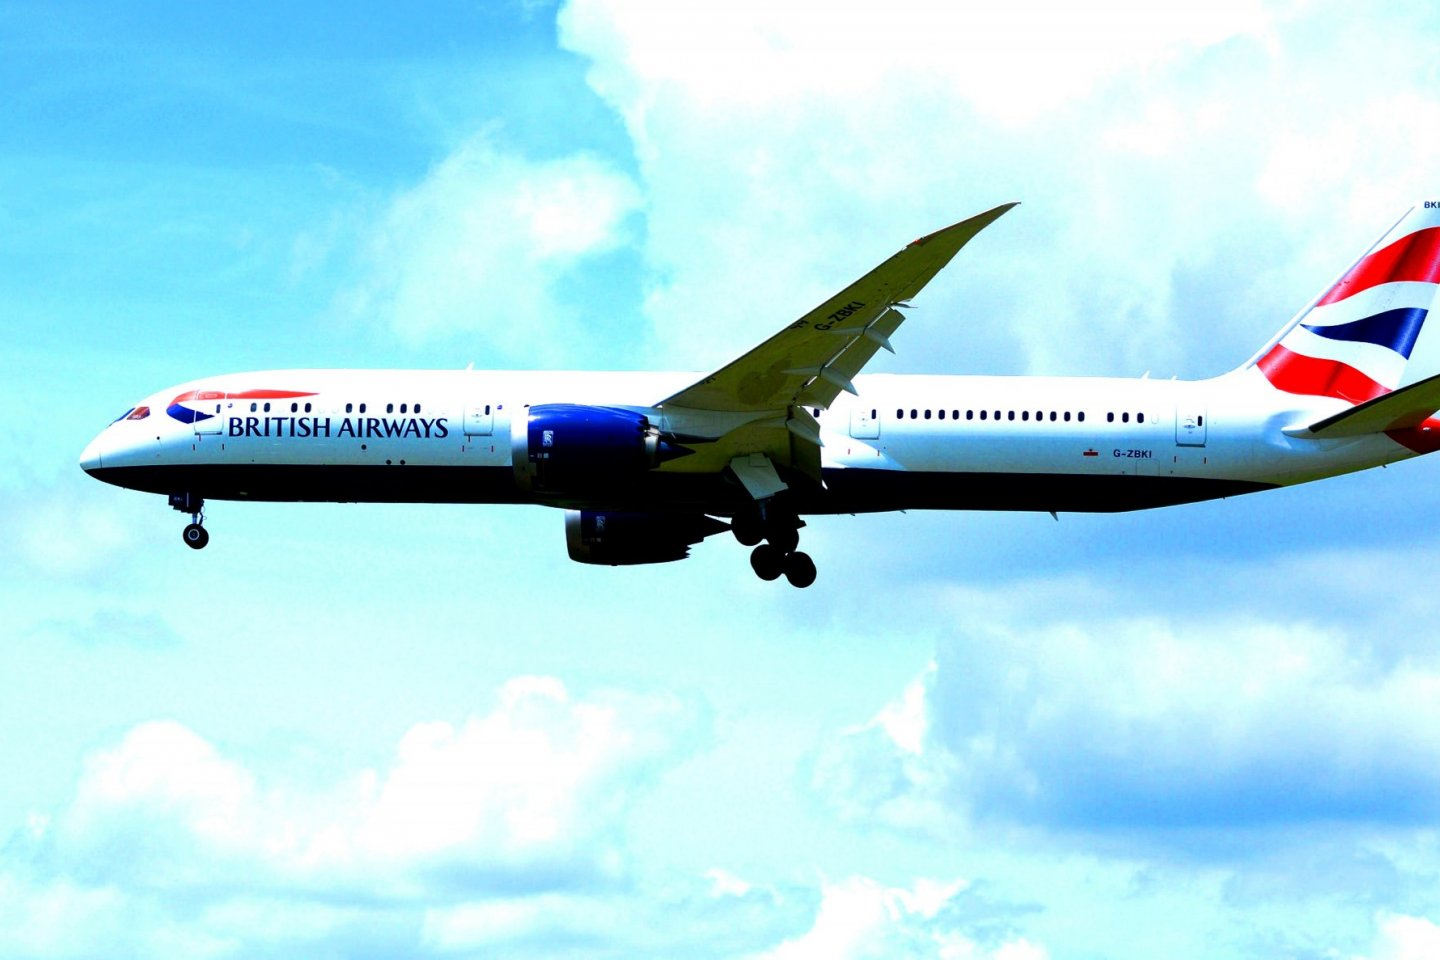 British Airways Boeing 787-900